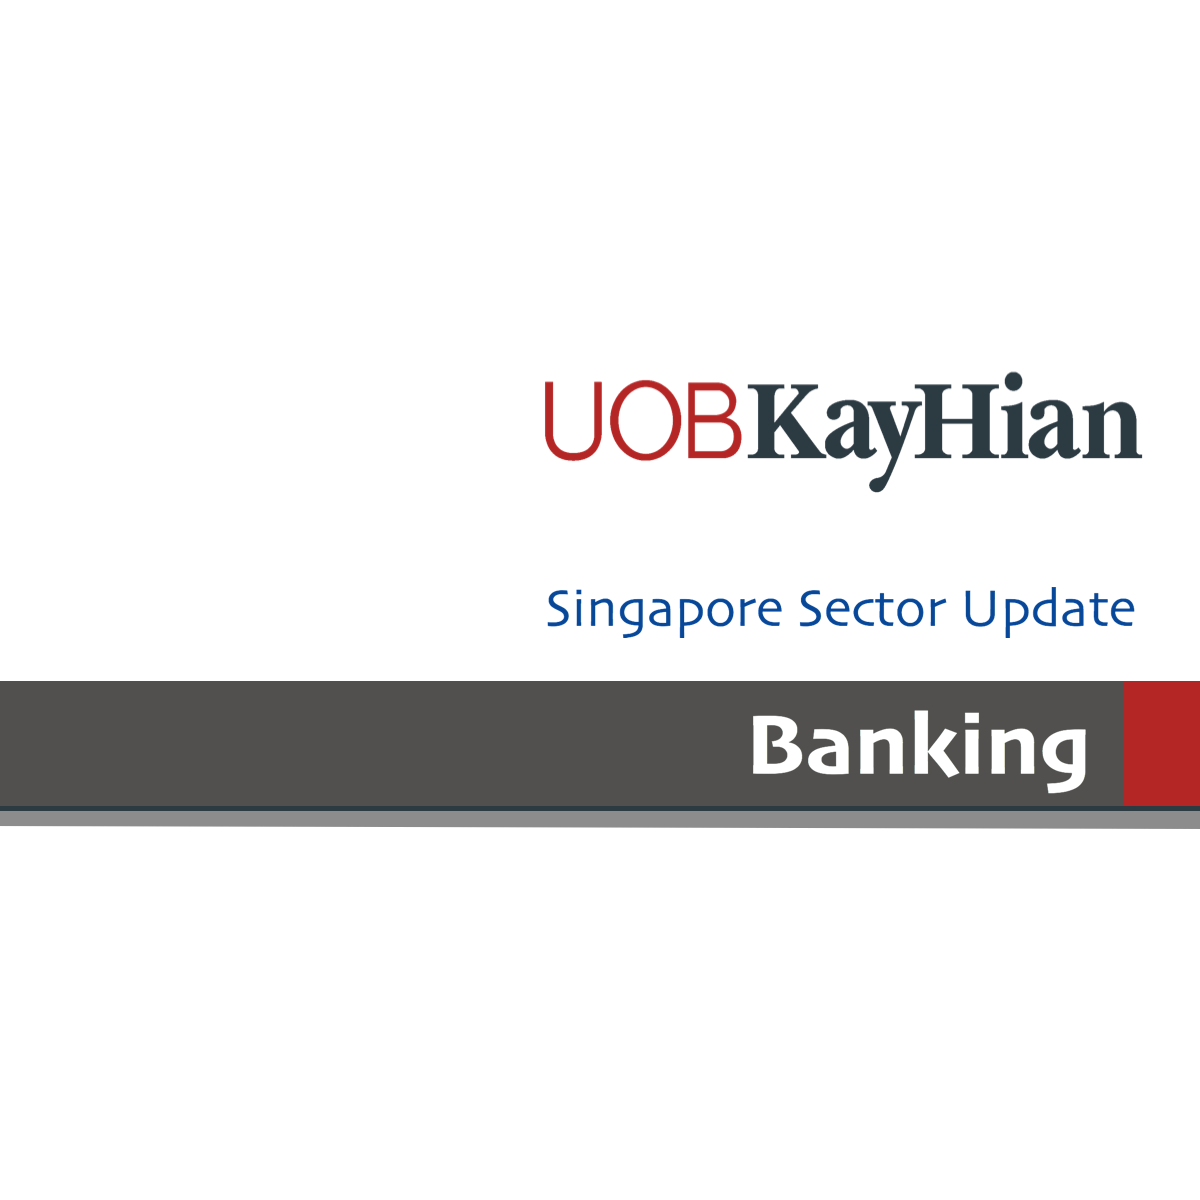 Banking – Singapore - UOB Kay Hian 2017-11-01: Sep 17 Monthly Statistics: Slight Pick-up In Loan Growth